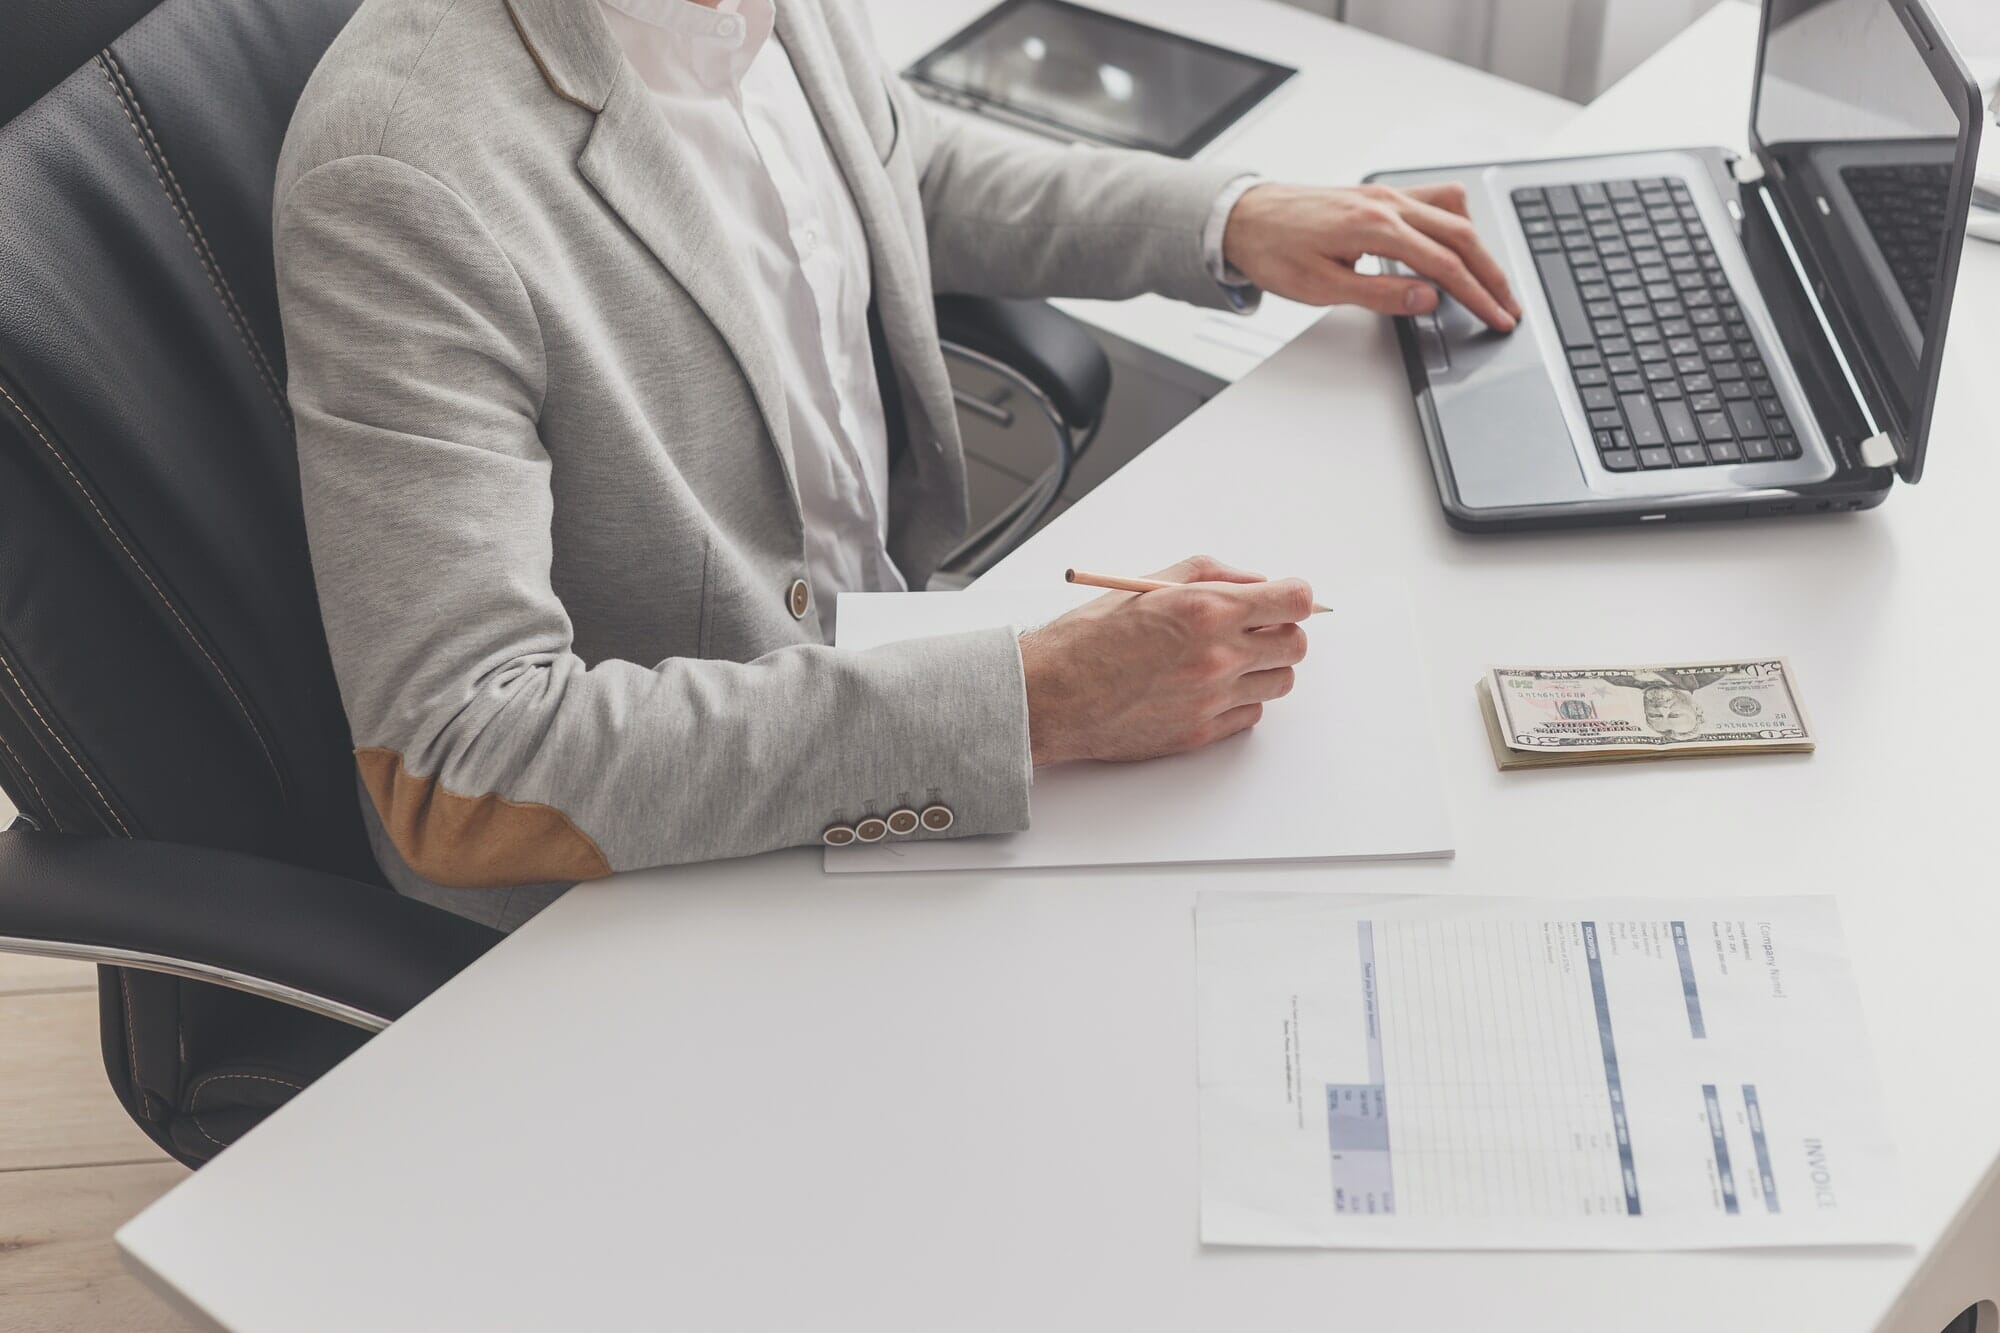 A male accountant works at a pc in an office at home.